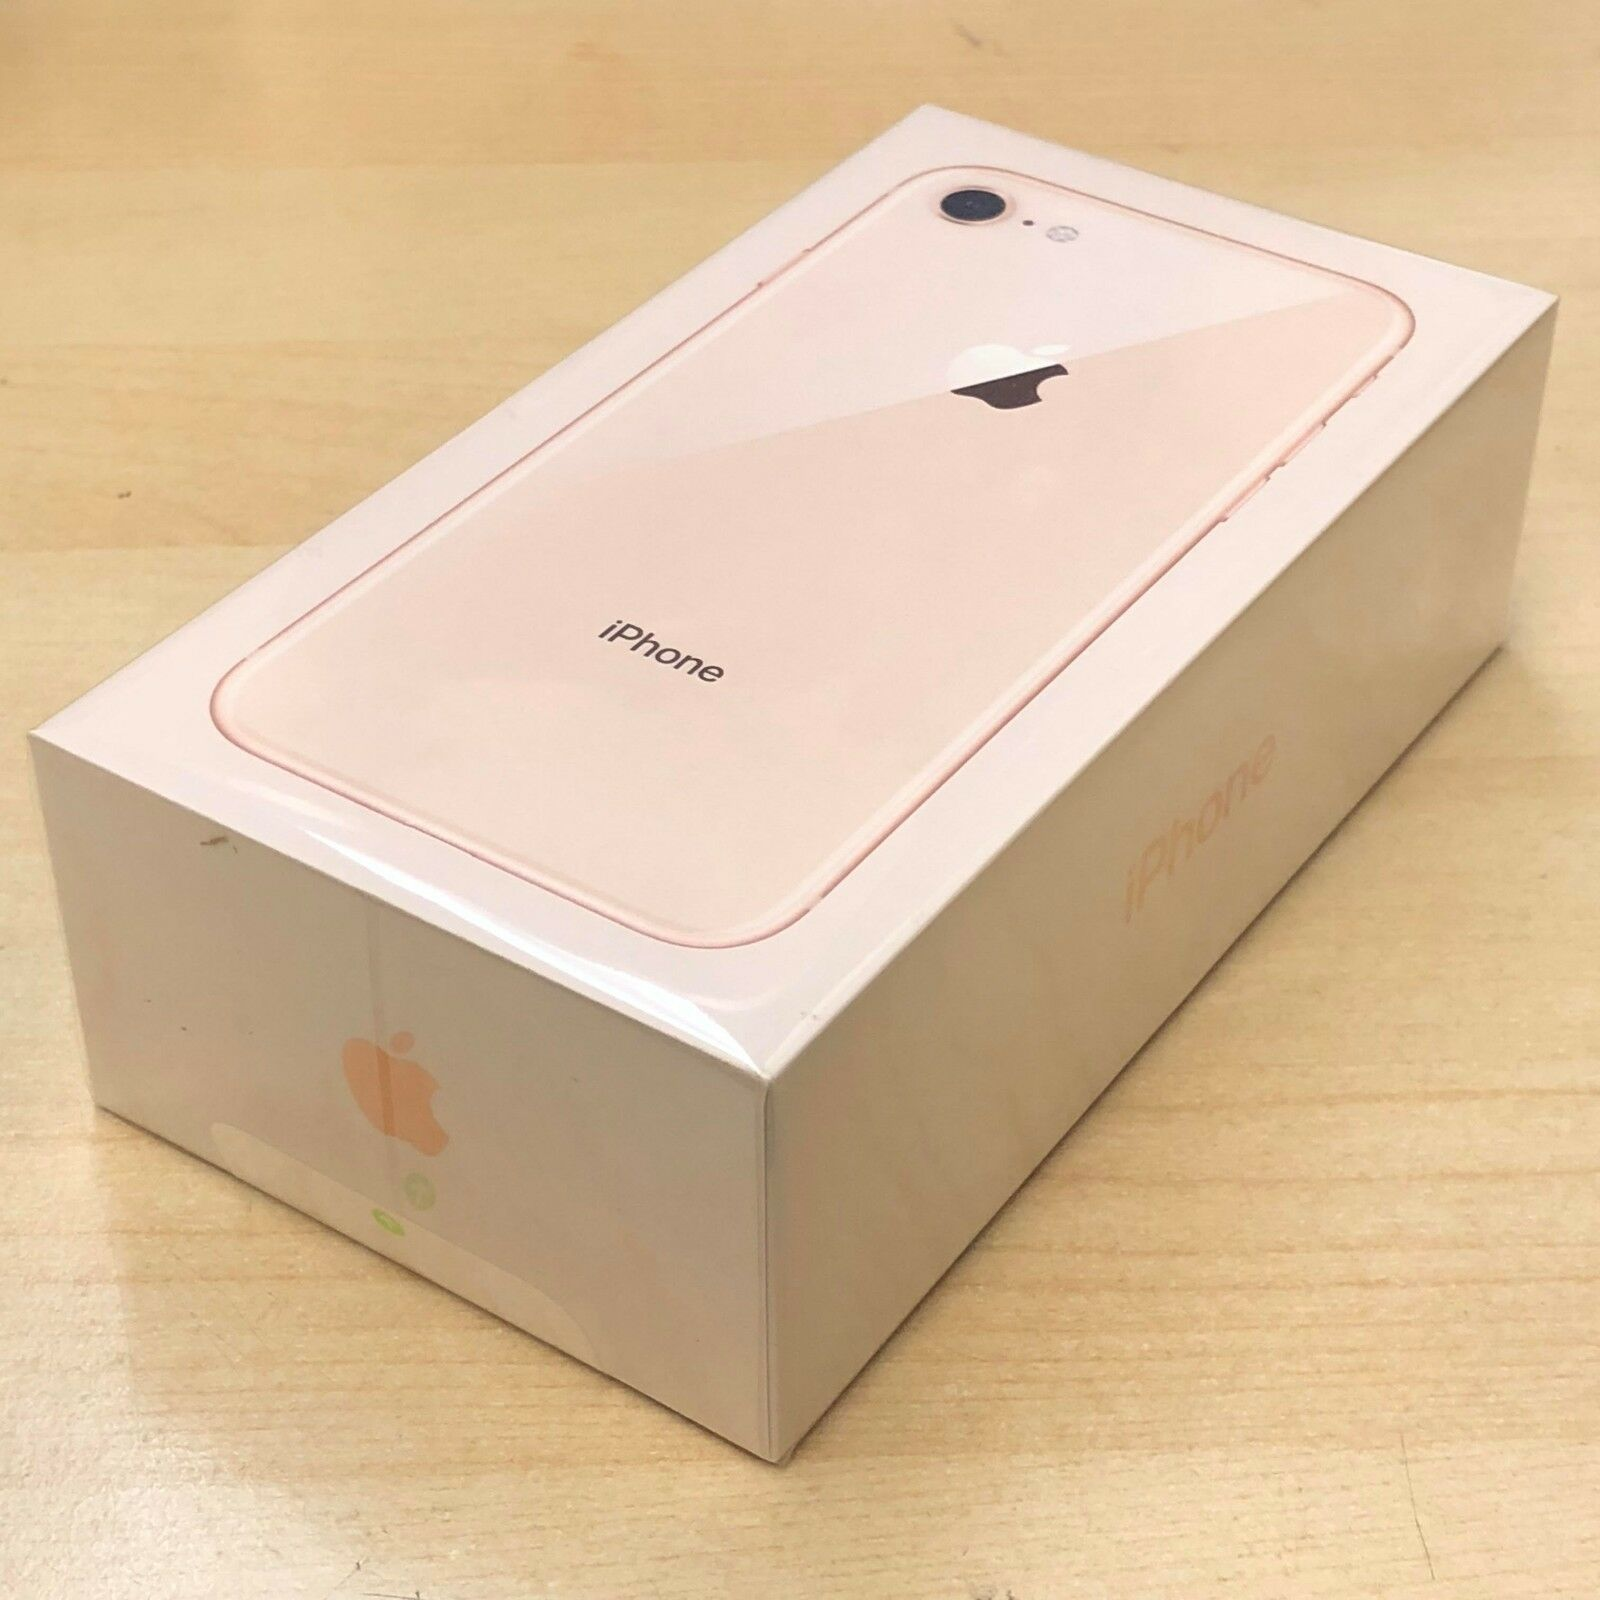 New Sealed In Box Apple Iphone 8 64gb 480 Apple Iphone Iphone 8 Iphone